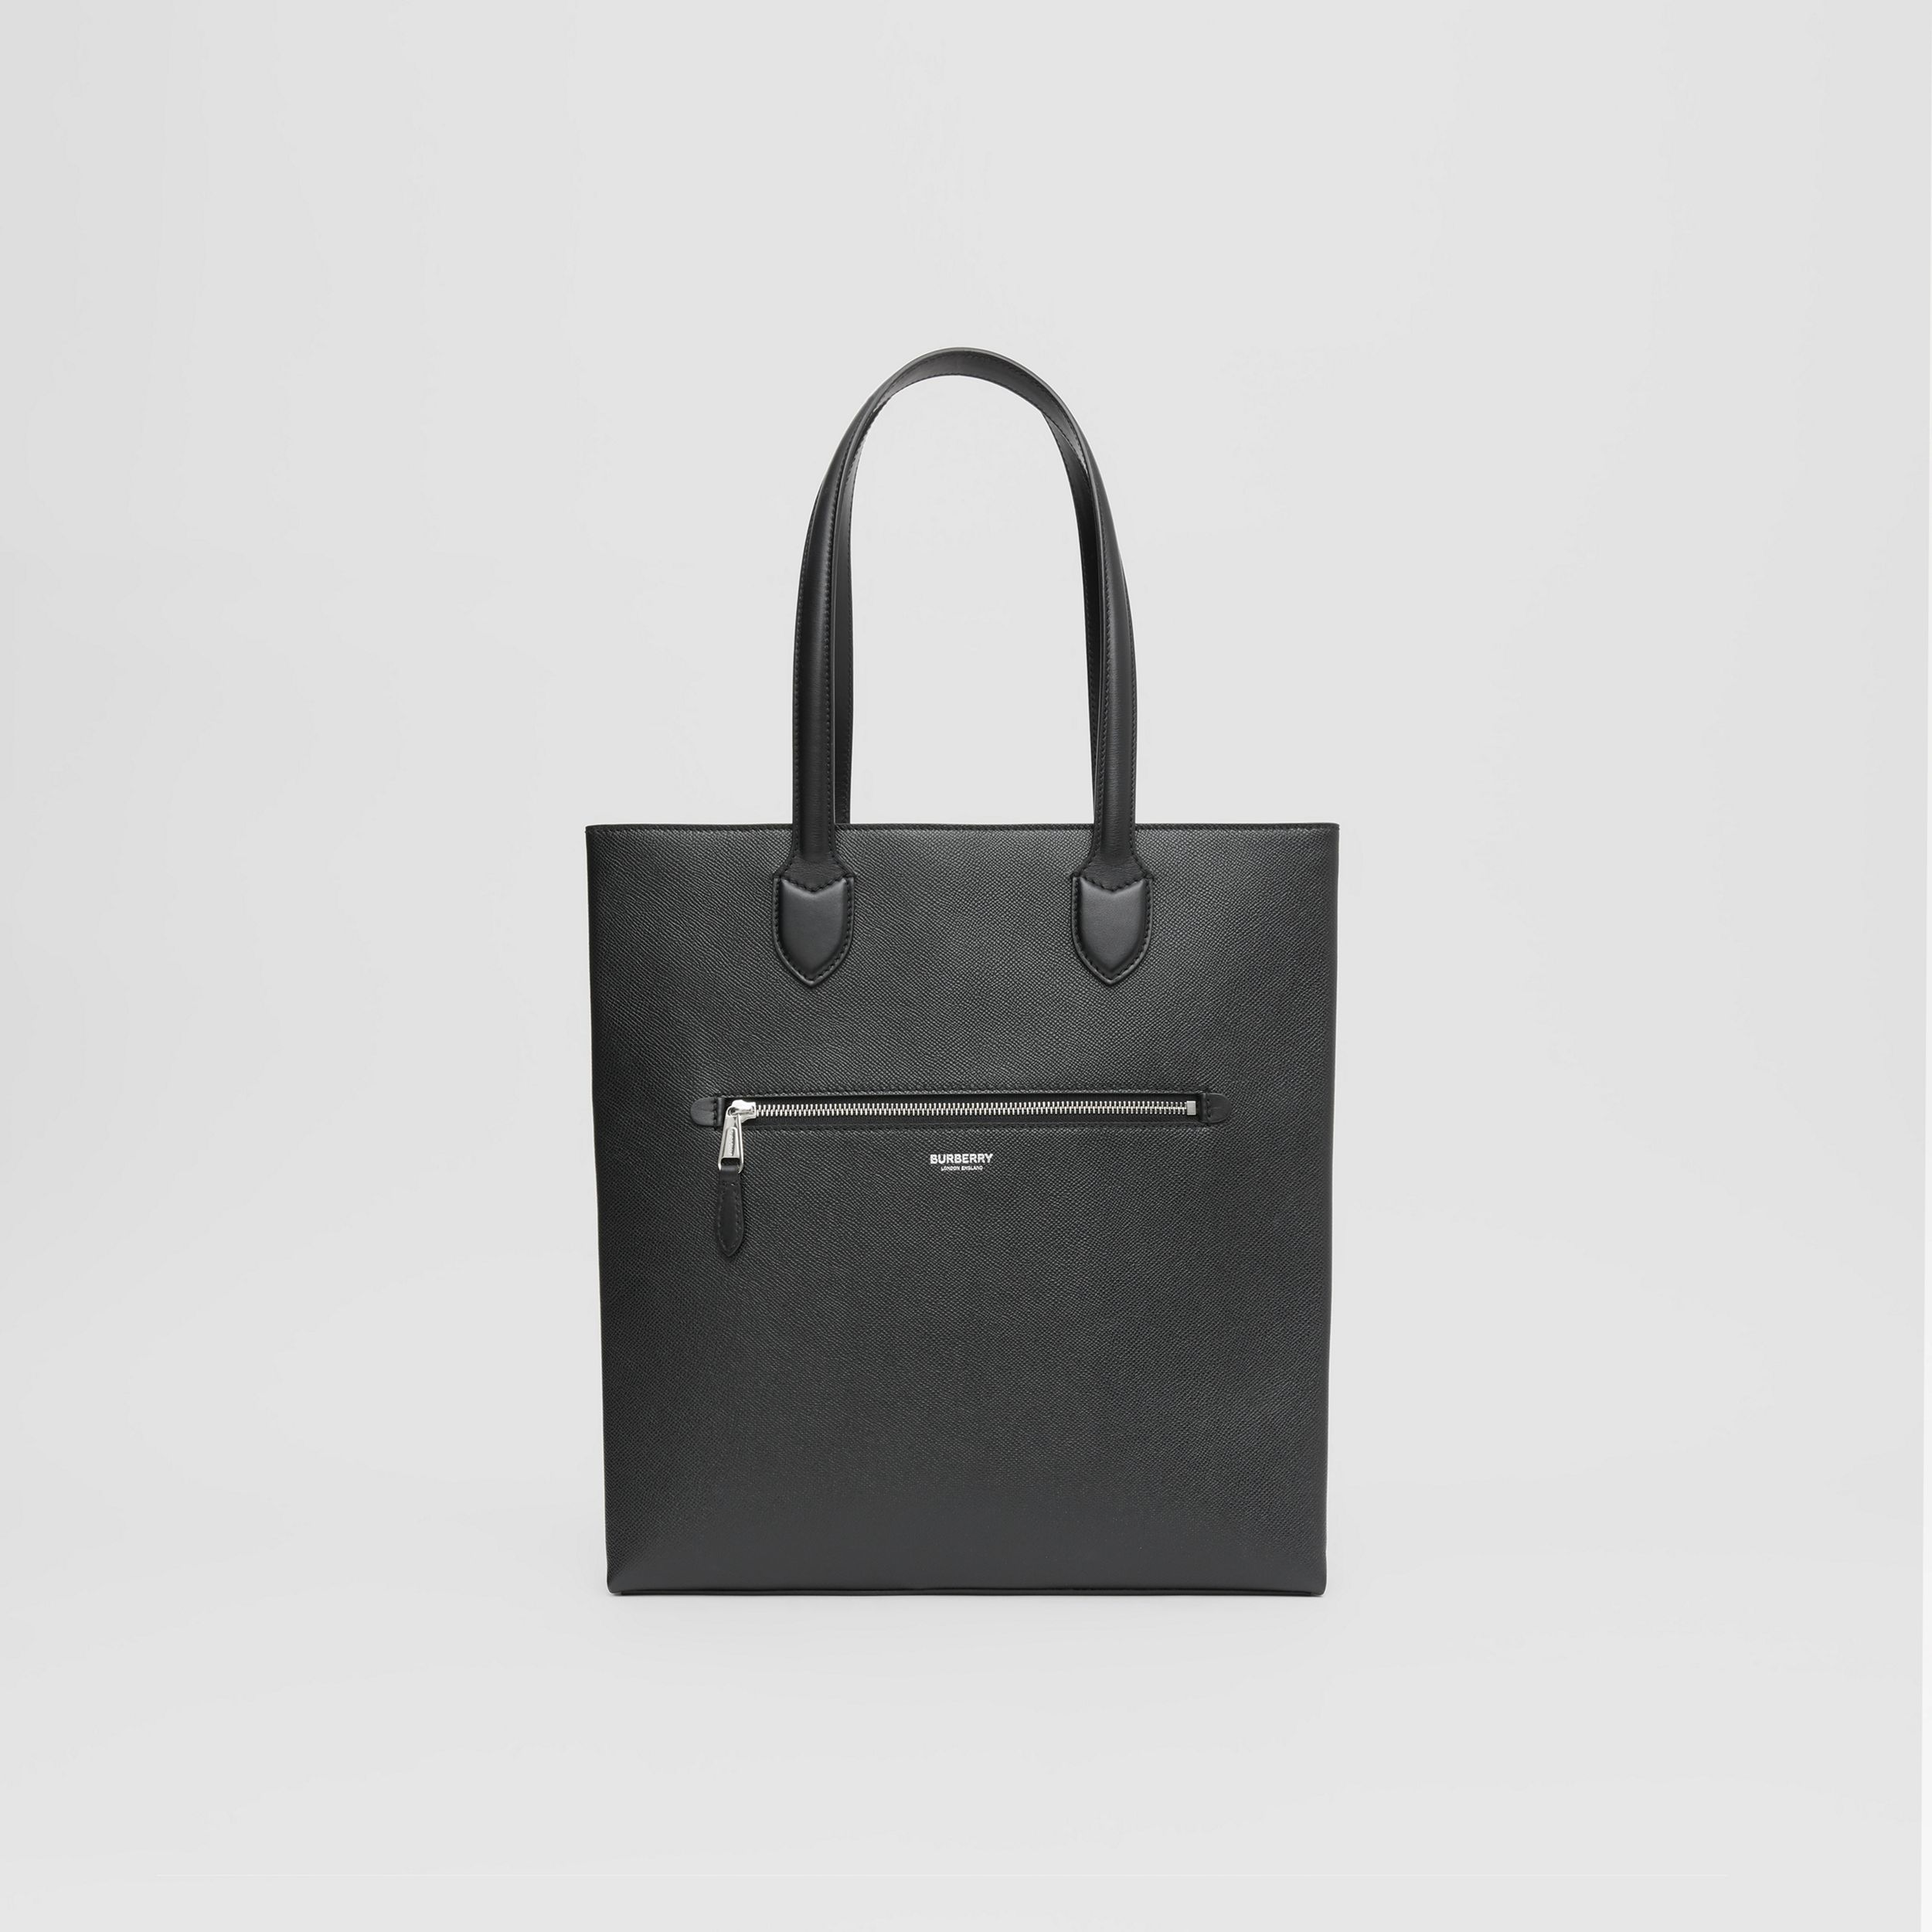 Medium Grainy Leather Tote in Black - Men | Burberry United Kingdom - 1